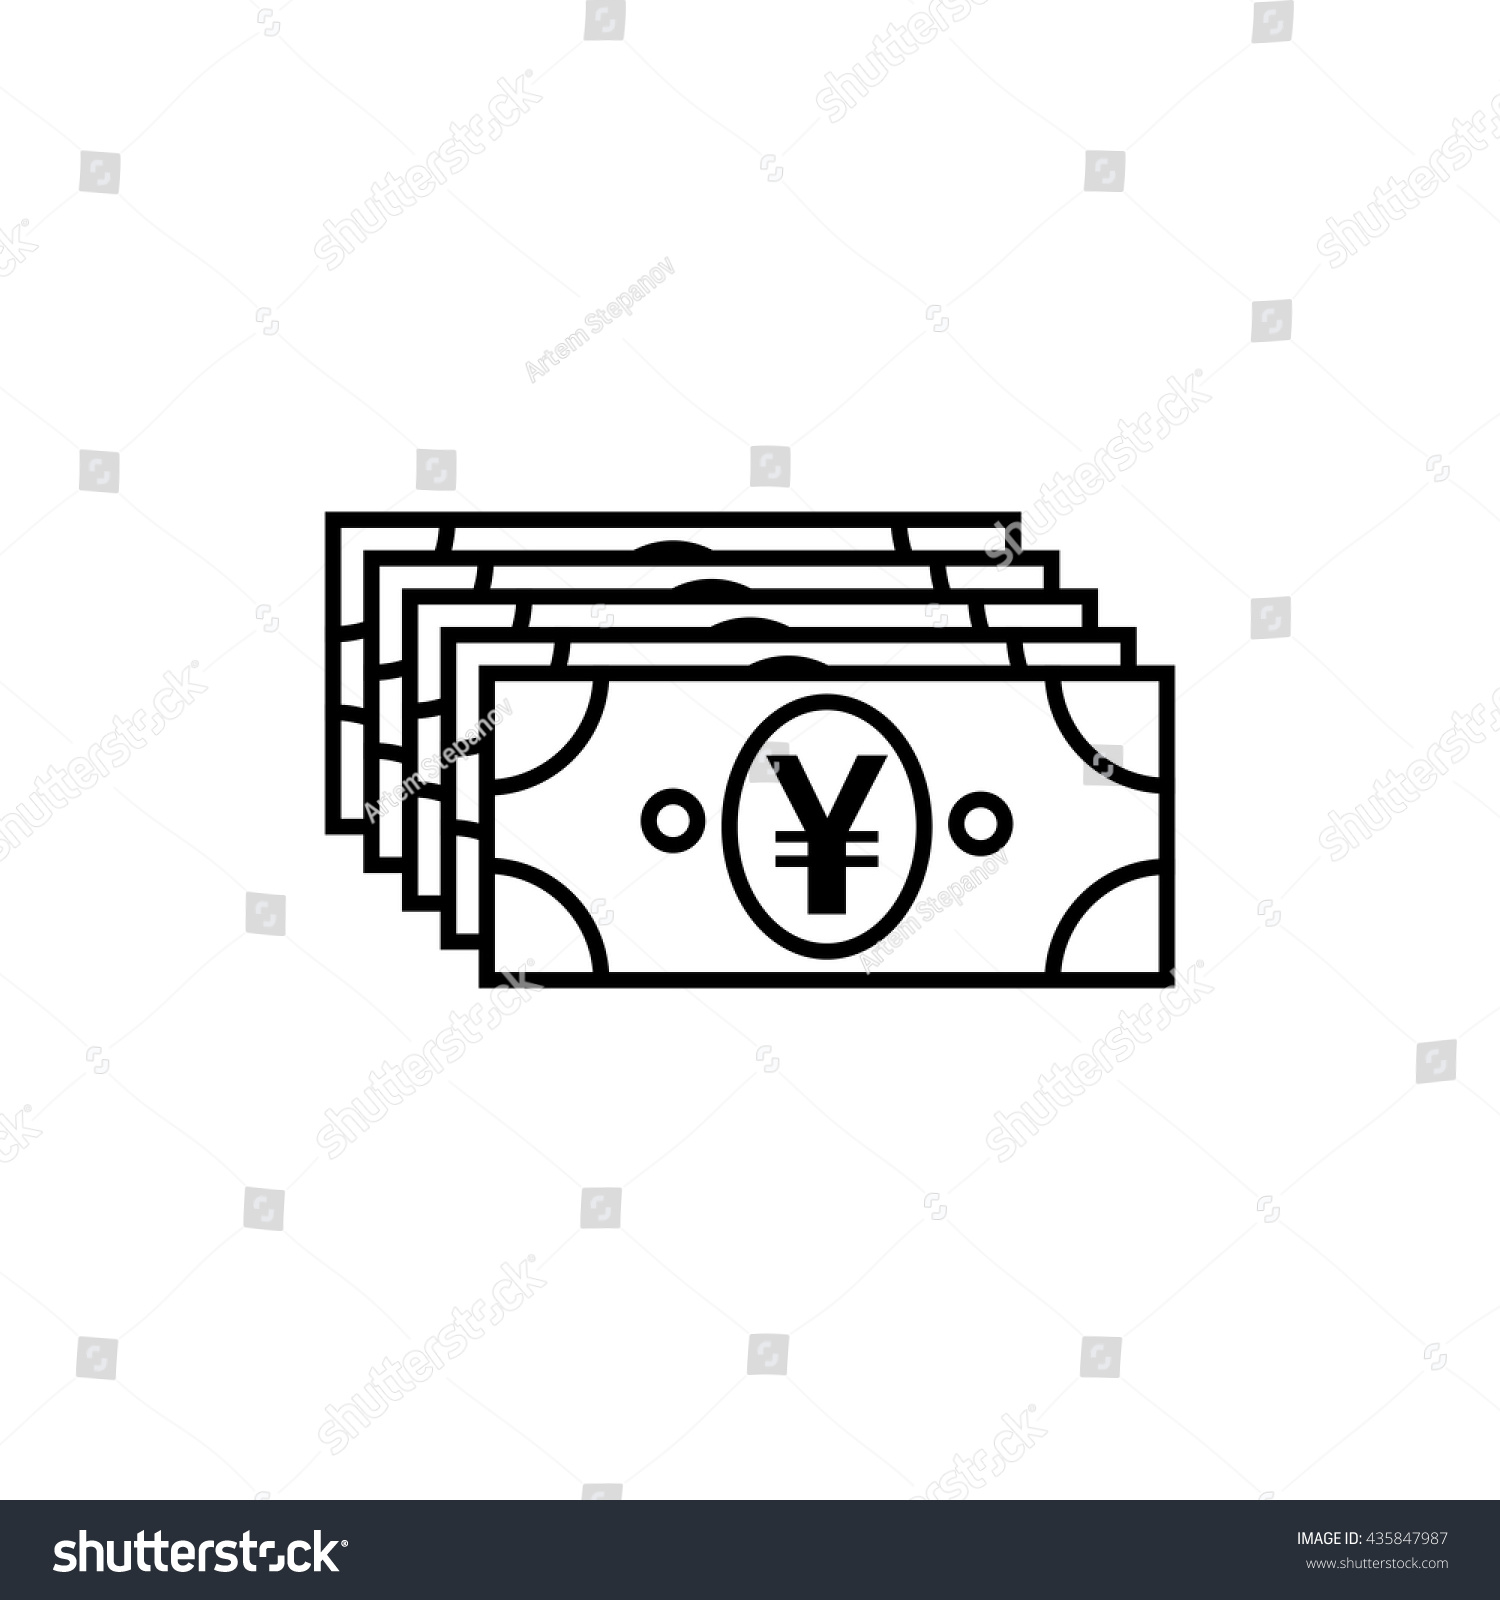 Japanese yen chinese yuan currency symbol stock vector 435847987 japanese yen or chinese yuan currency symbol flat icon for apps and websites biocorpaavc